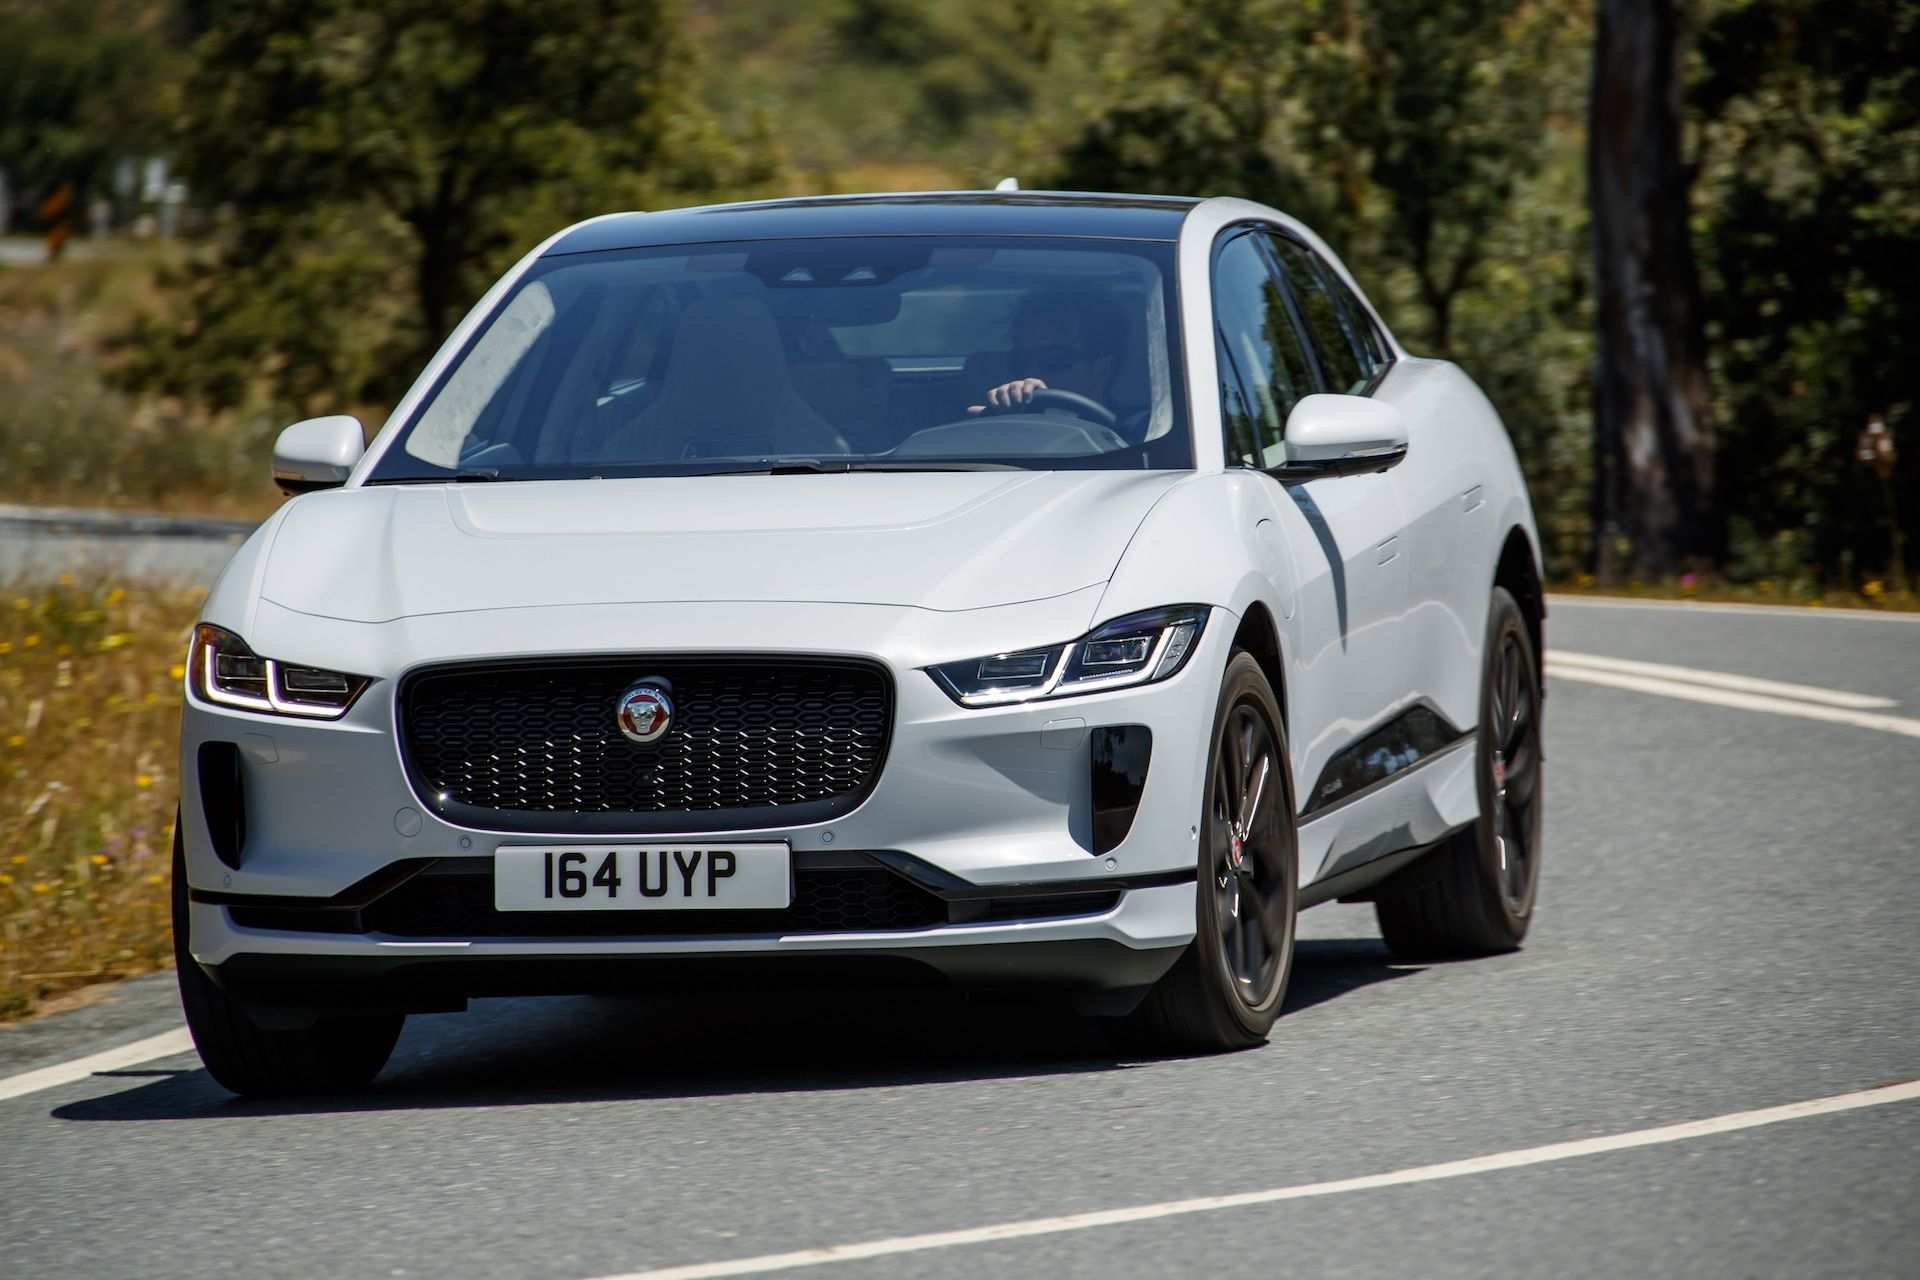 74 Gallery of The 2019 Jaguar Vehicles Concept Redesign And Review Concept by The 2019 Jaguar Vehicles Concept Redesign And Review